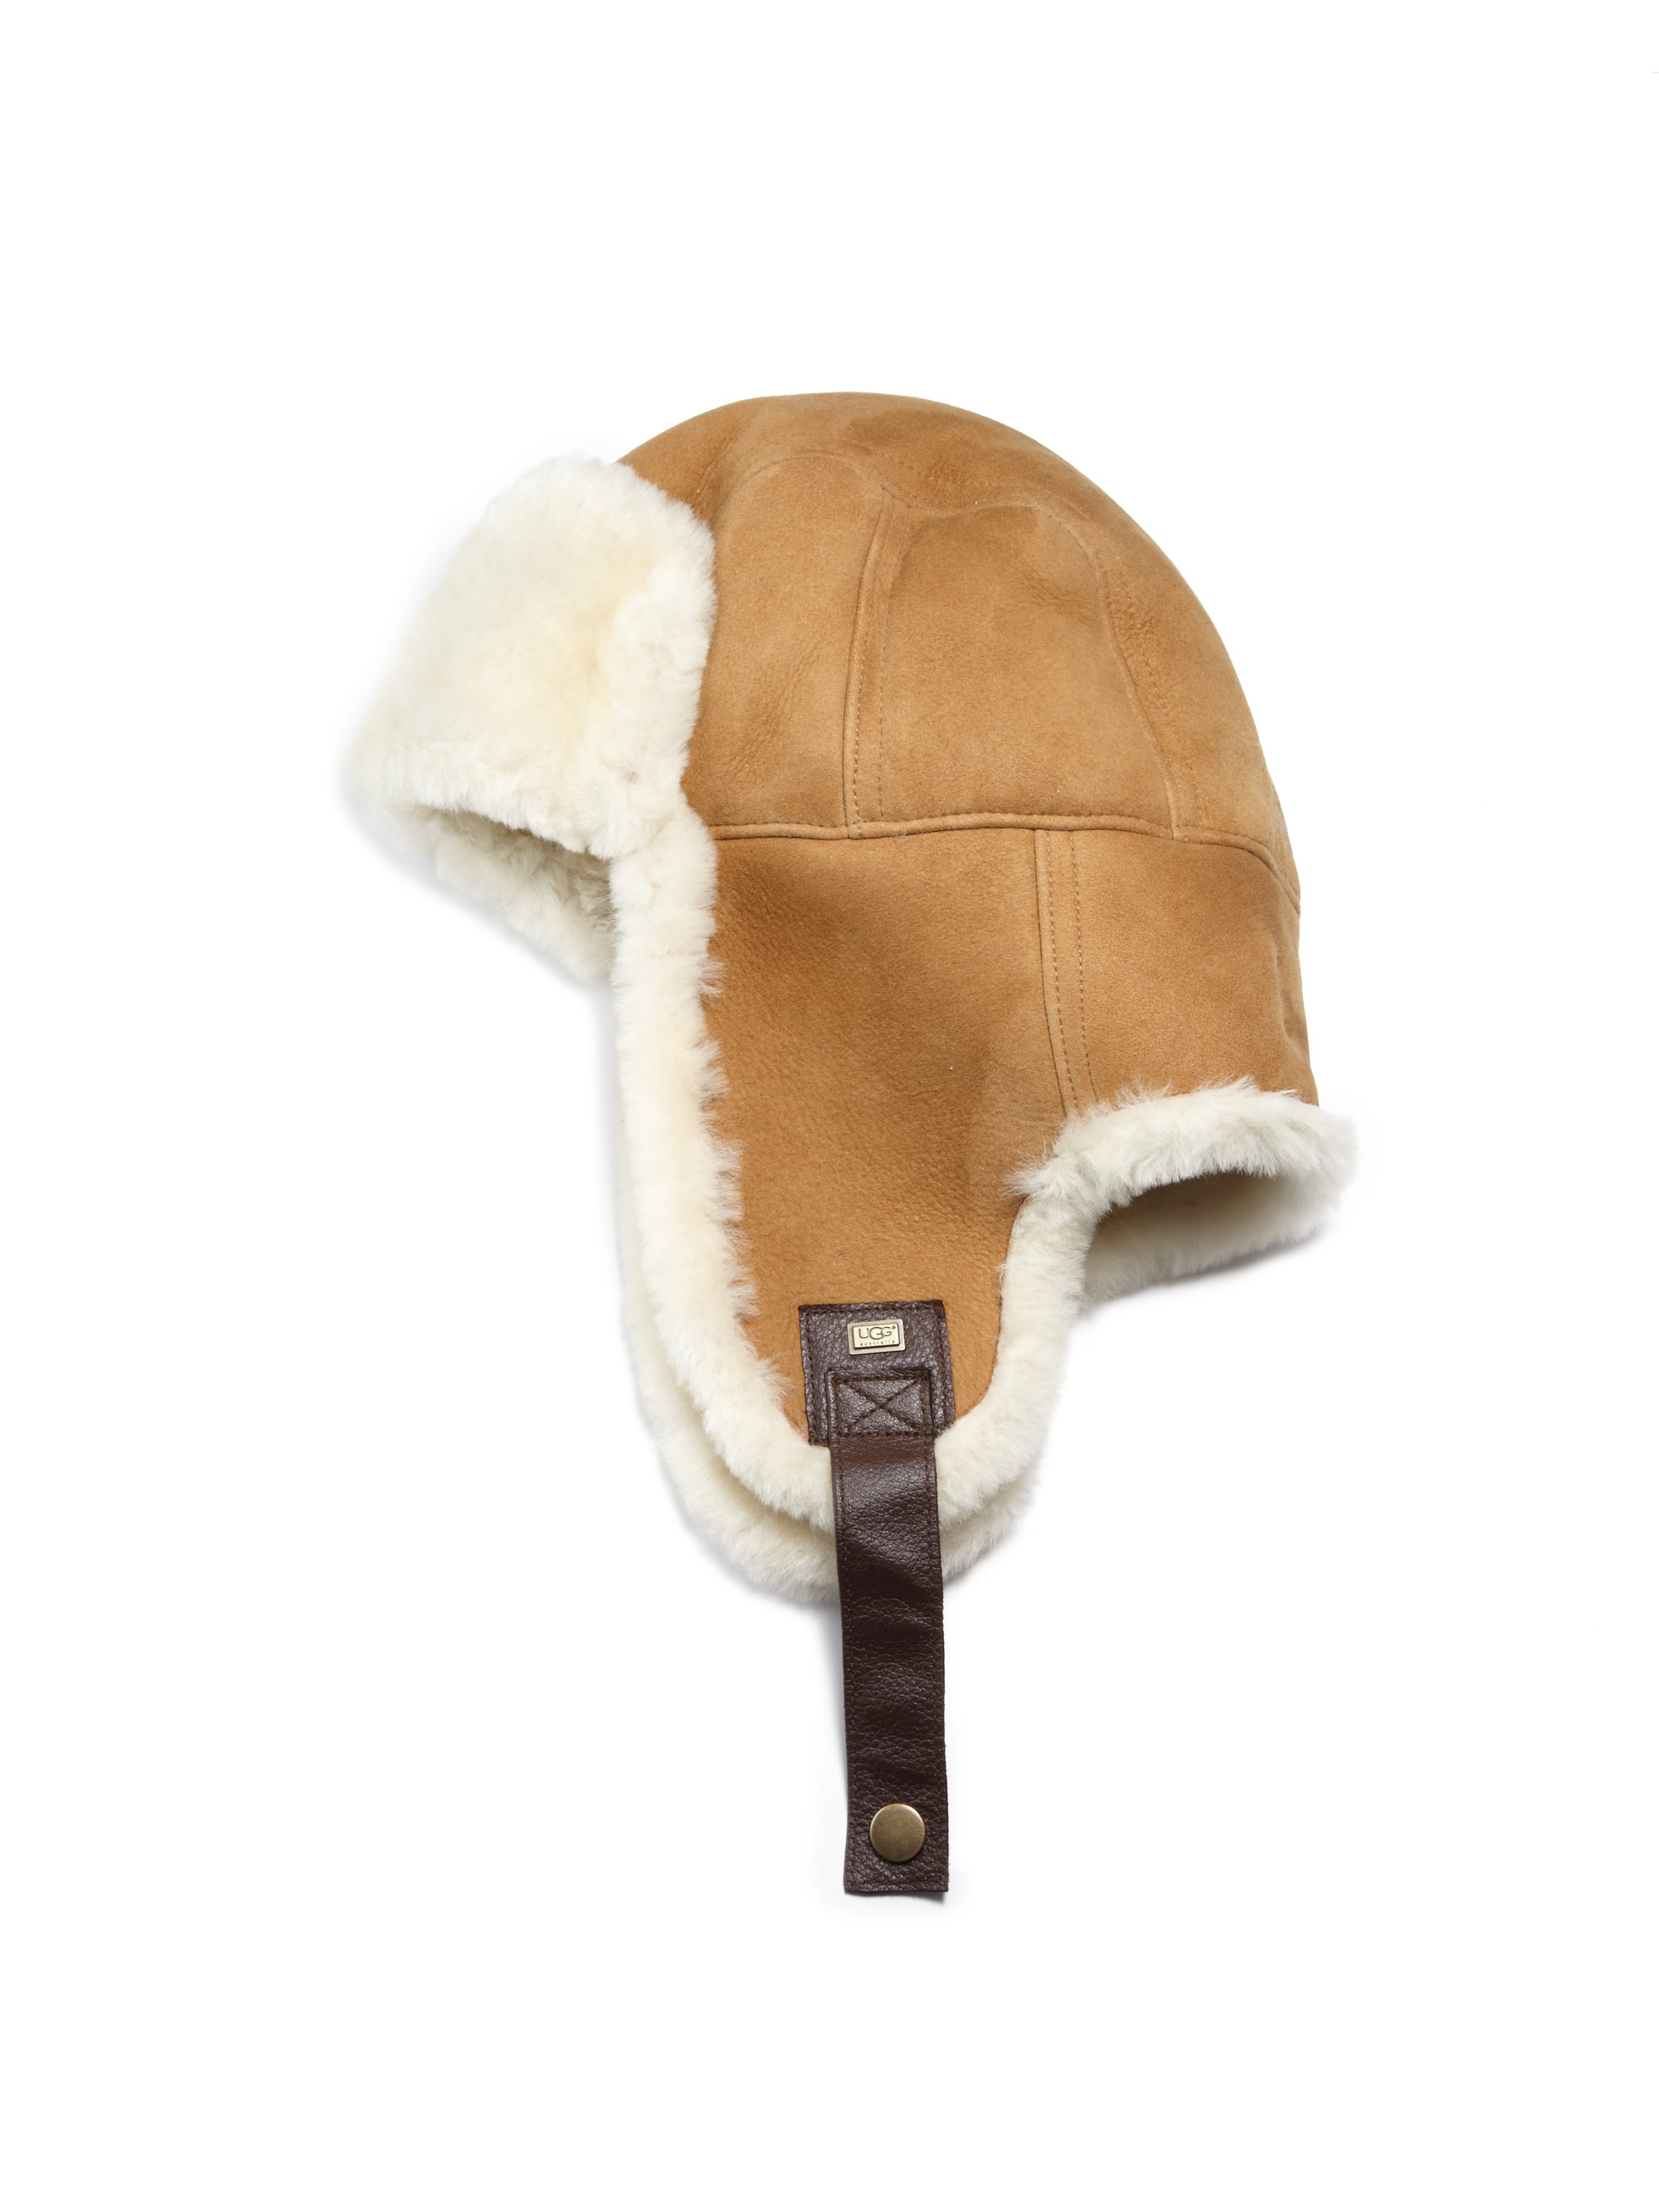 c89aaba5c49 Ugg Mens Shearling Trapper Hat - cheap watches mgc-gas.com